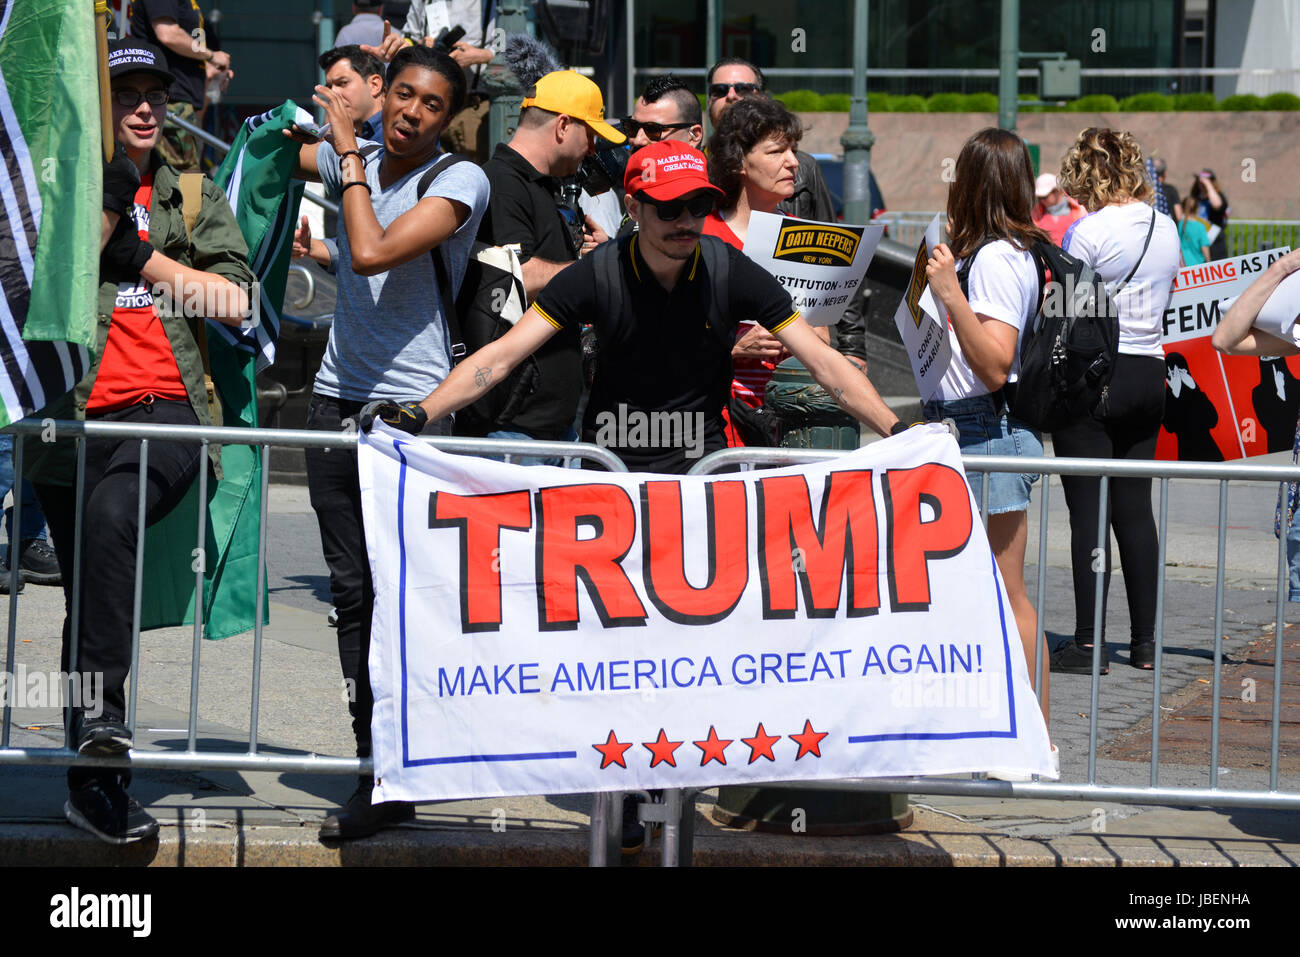 Man holding a 'Make America Great Again' sign at an anti-Sharia rally in New York City. - Stock Image